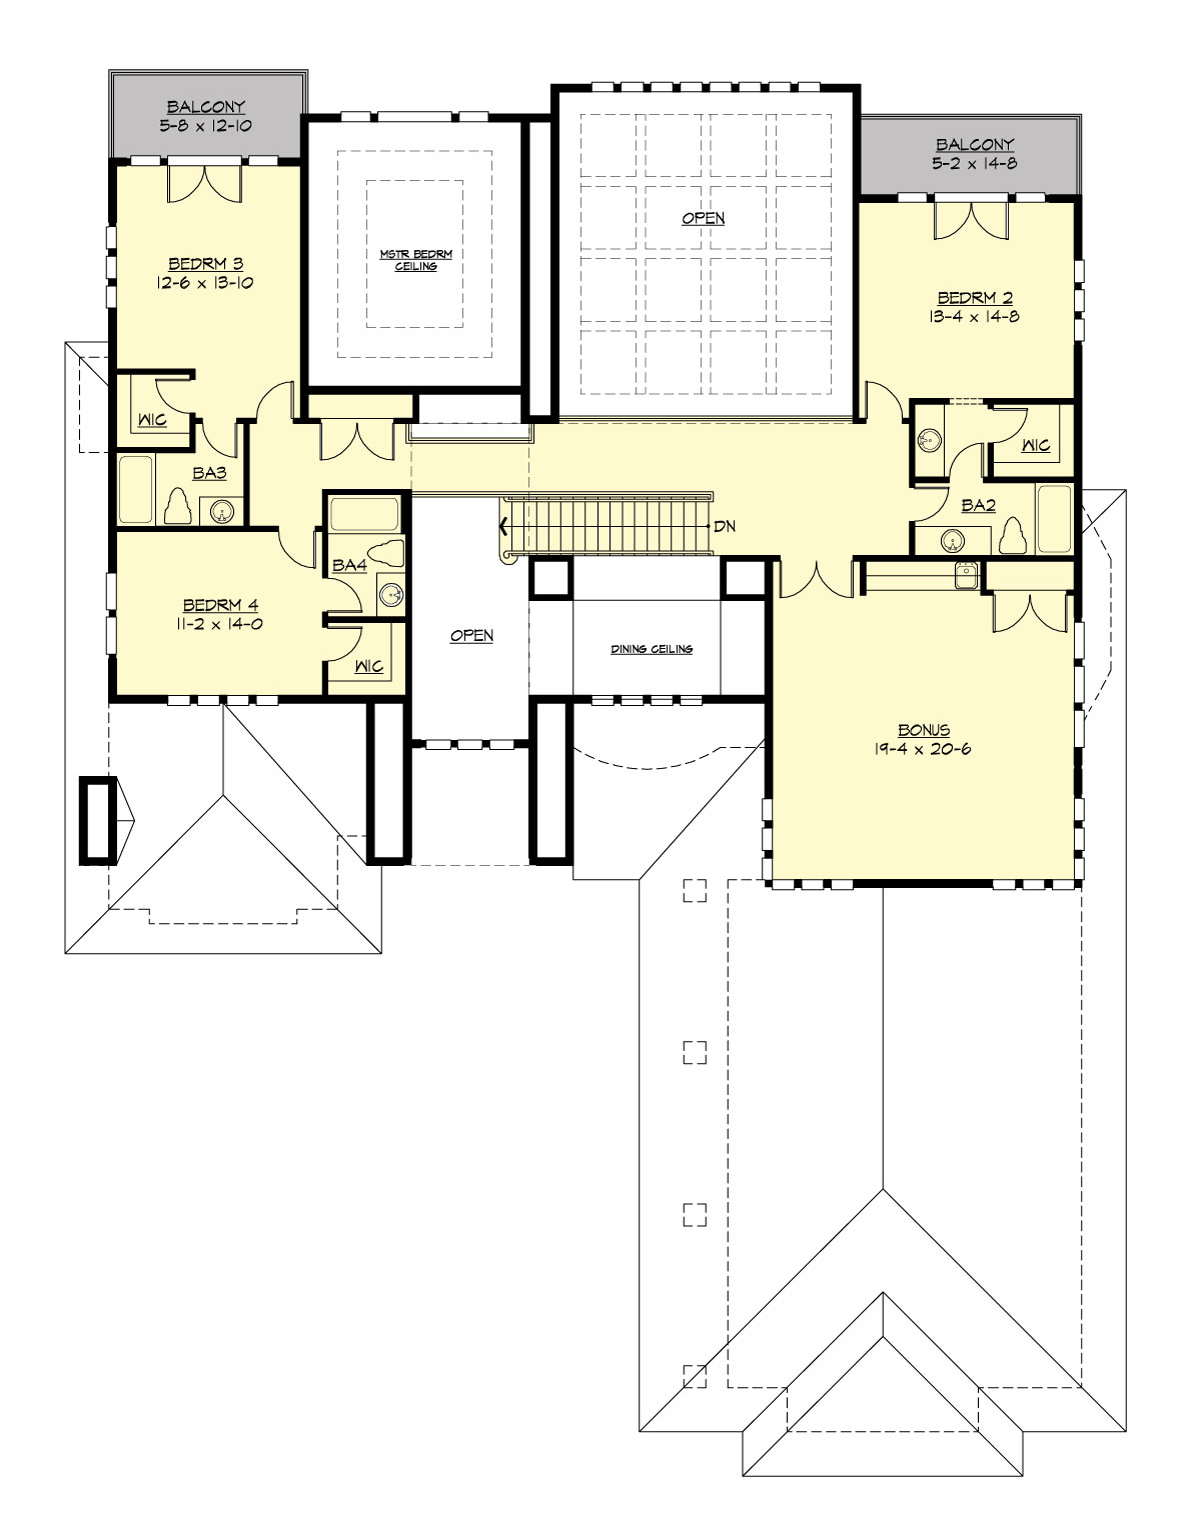 Greenleaf retreat 3361 4 bedrooms and 4 baths the for The retreat floor plans